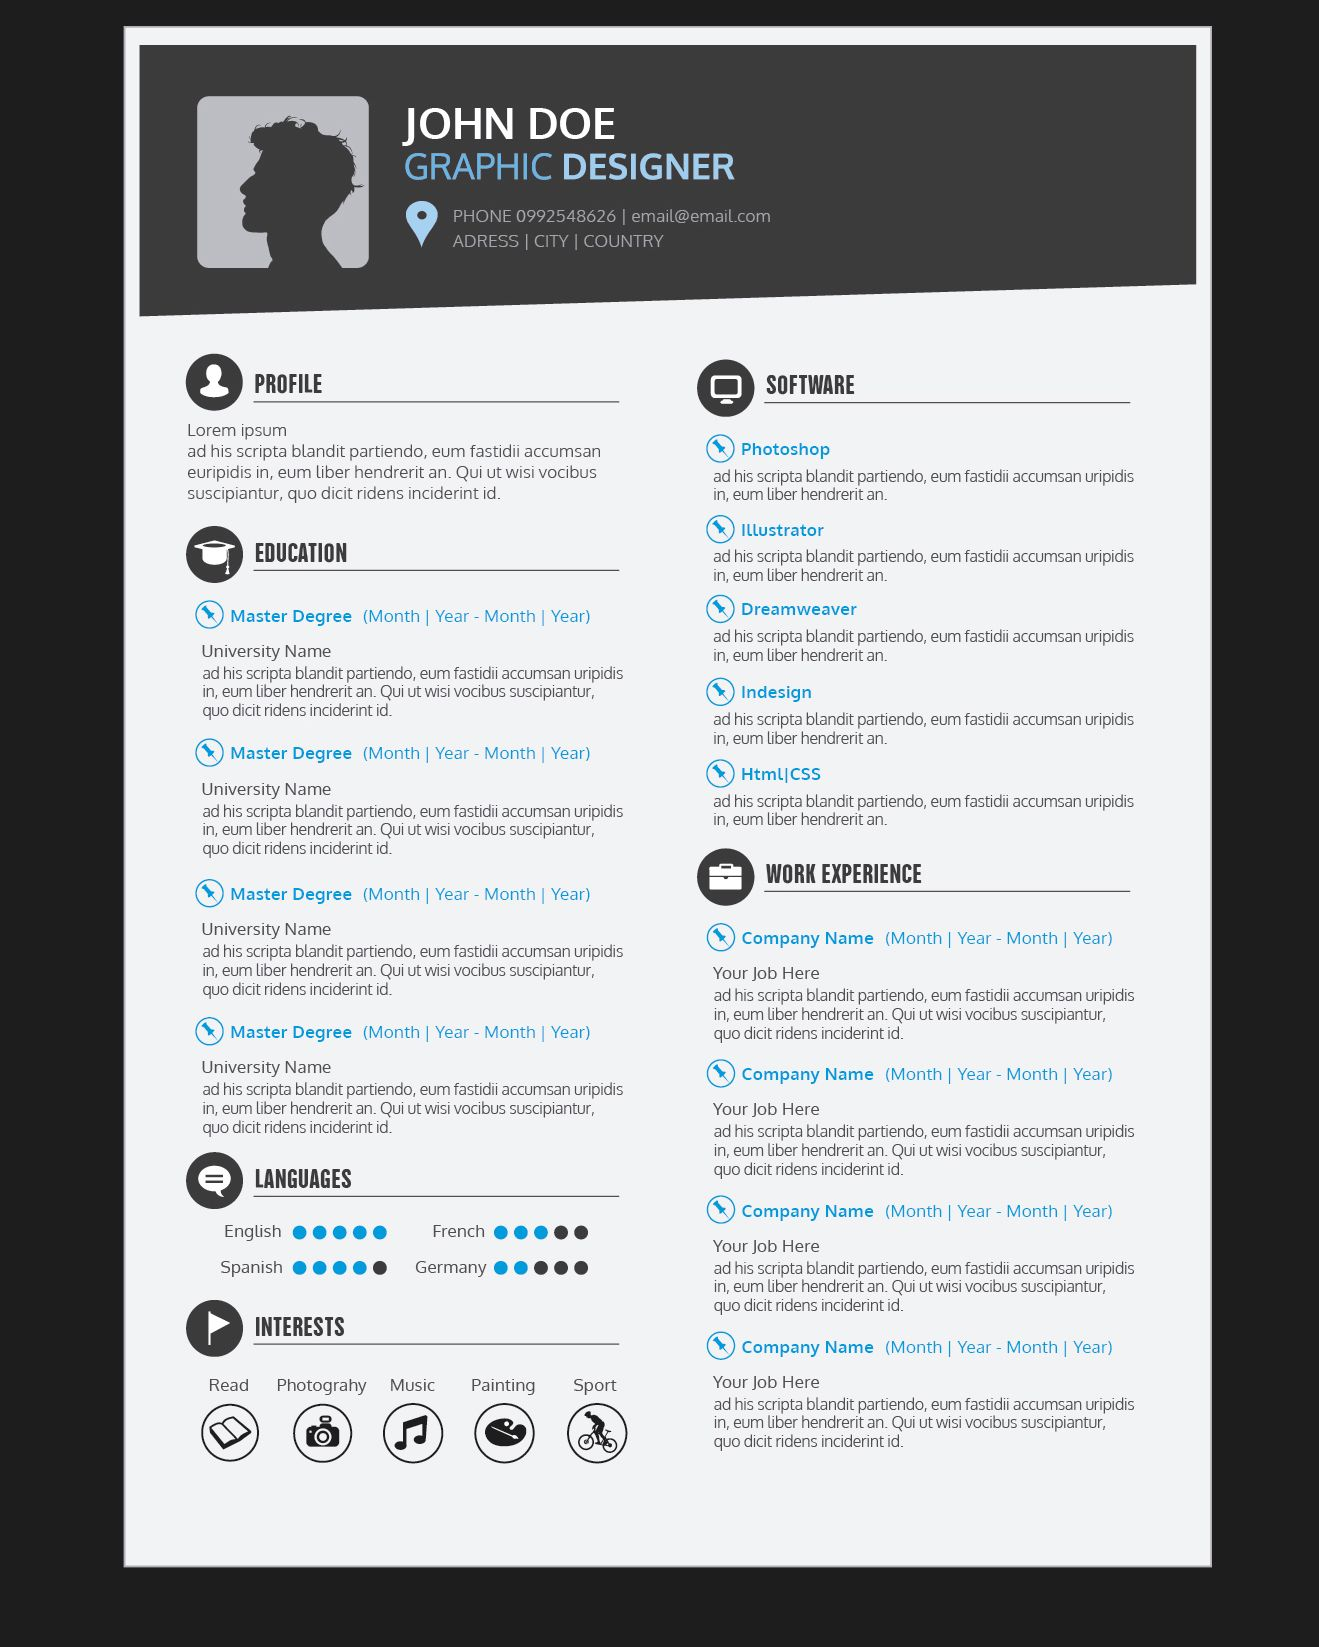 Graphic Designer Resume Cv Vector Download